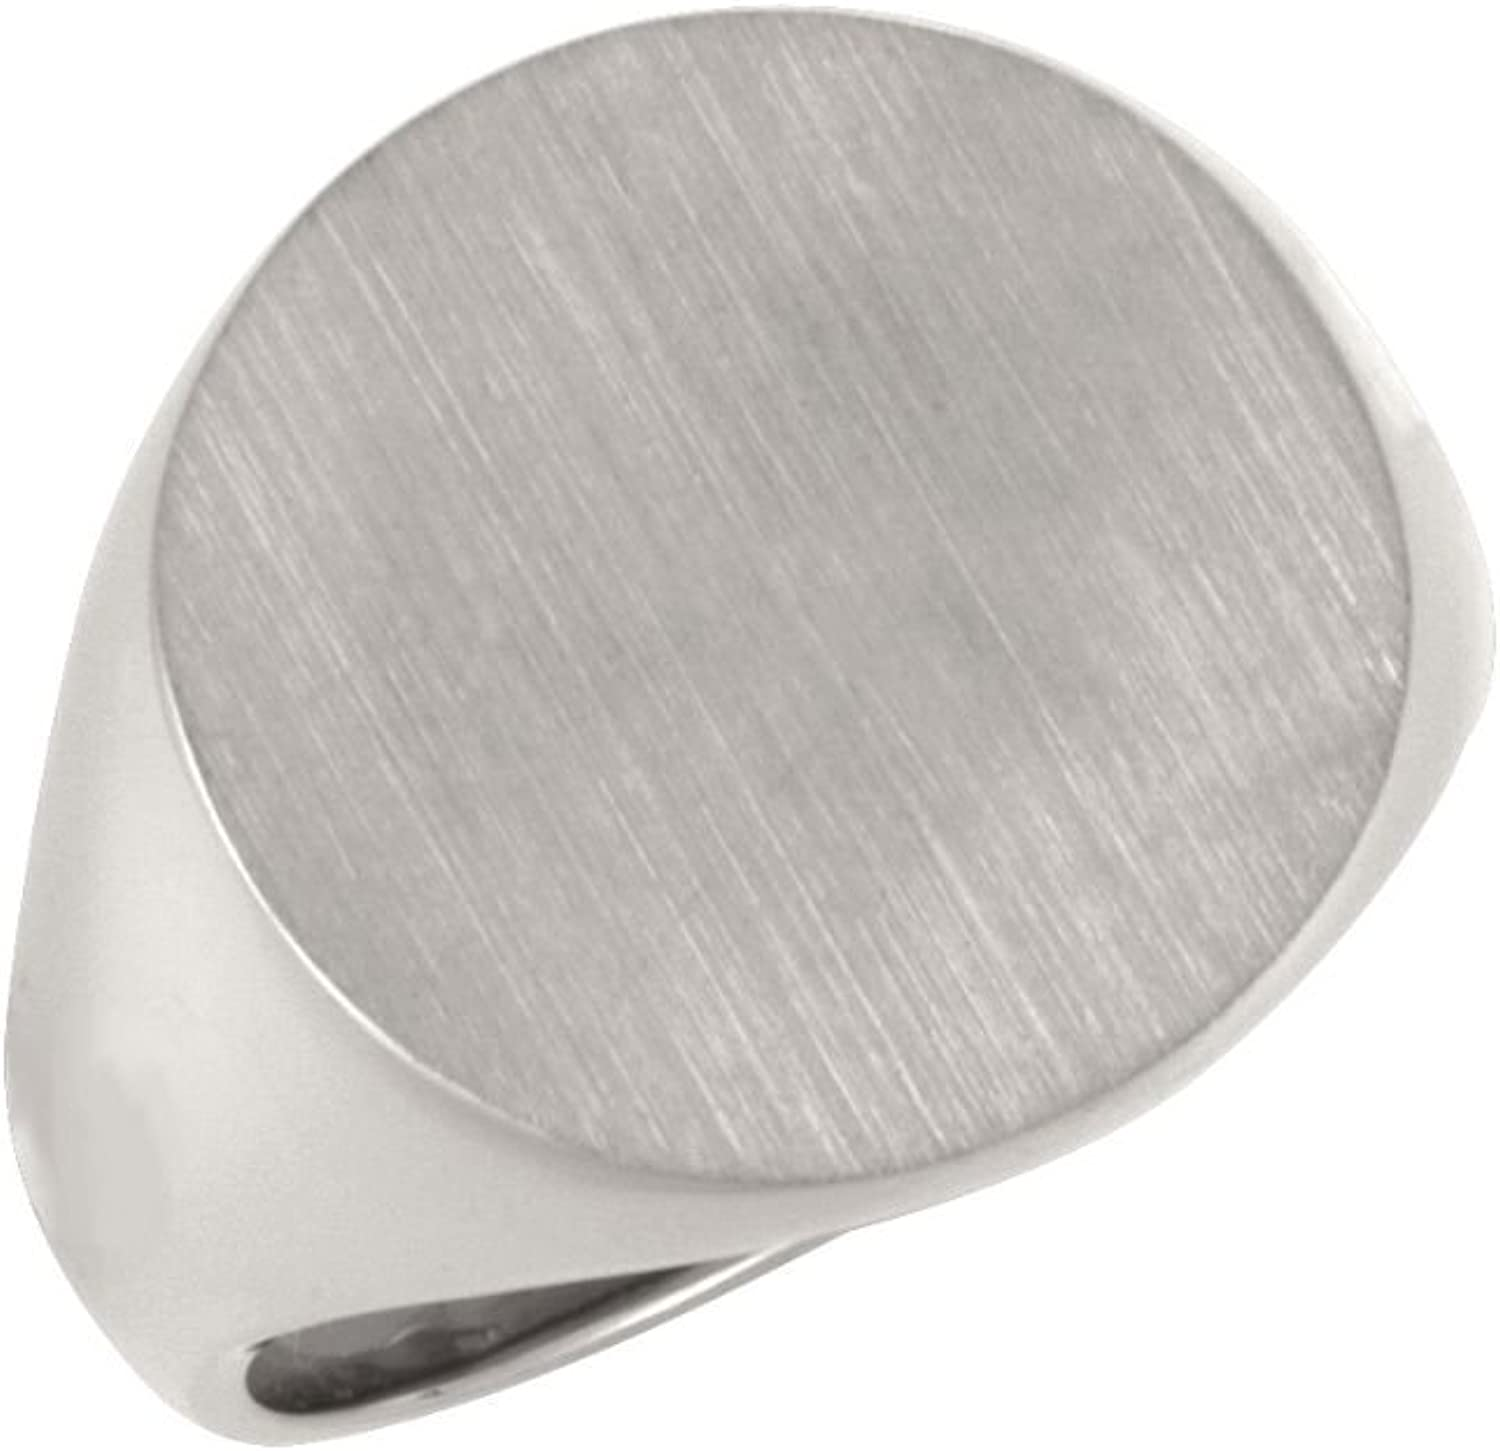 Beautiful Sterling silver 925 sterling Sterlingsilver Gents Solid Sig Rg W Brush Fin